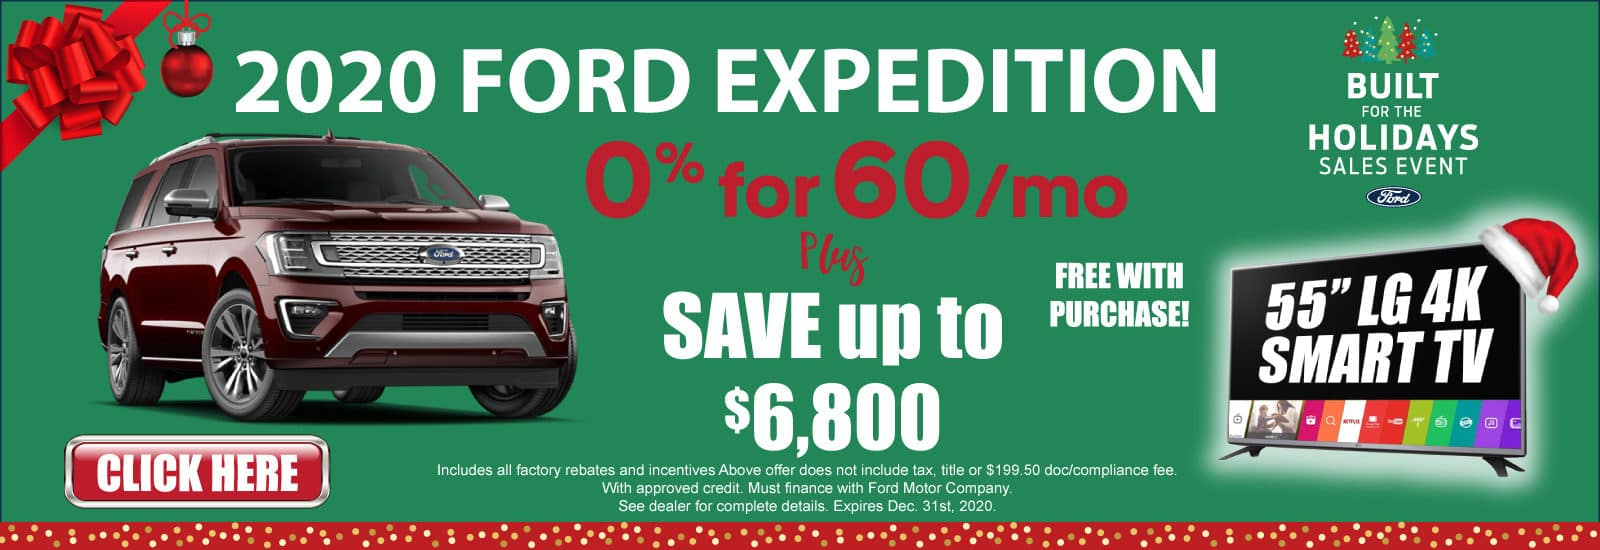 holiday2020-Ford-Expedition-Web-Banner-1600×550